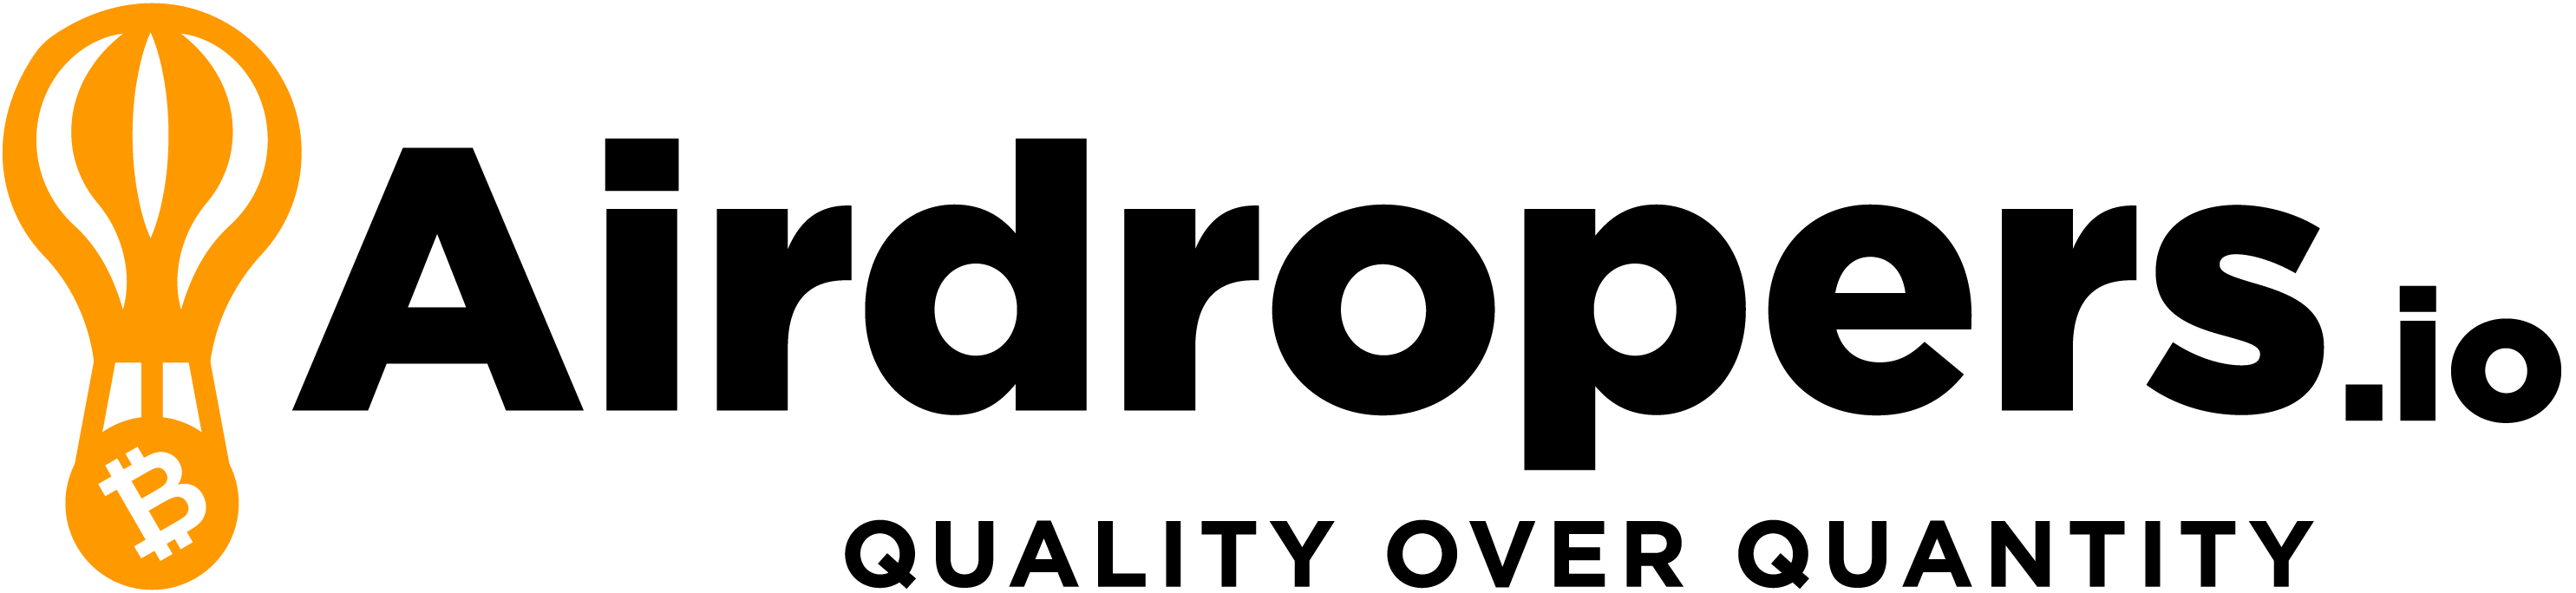 Airdropers